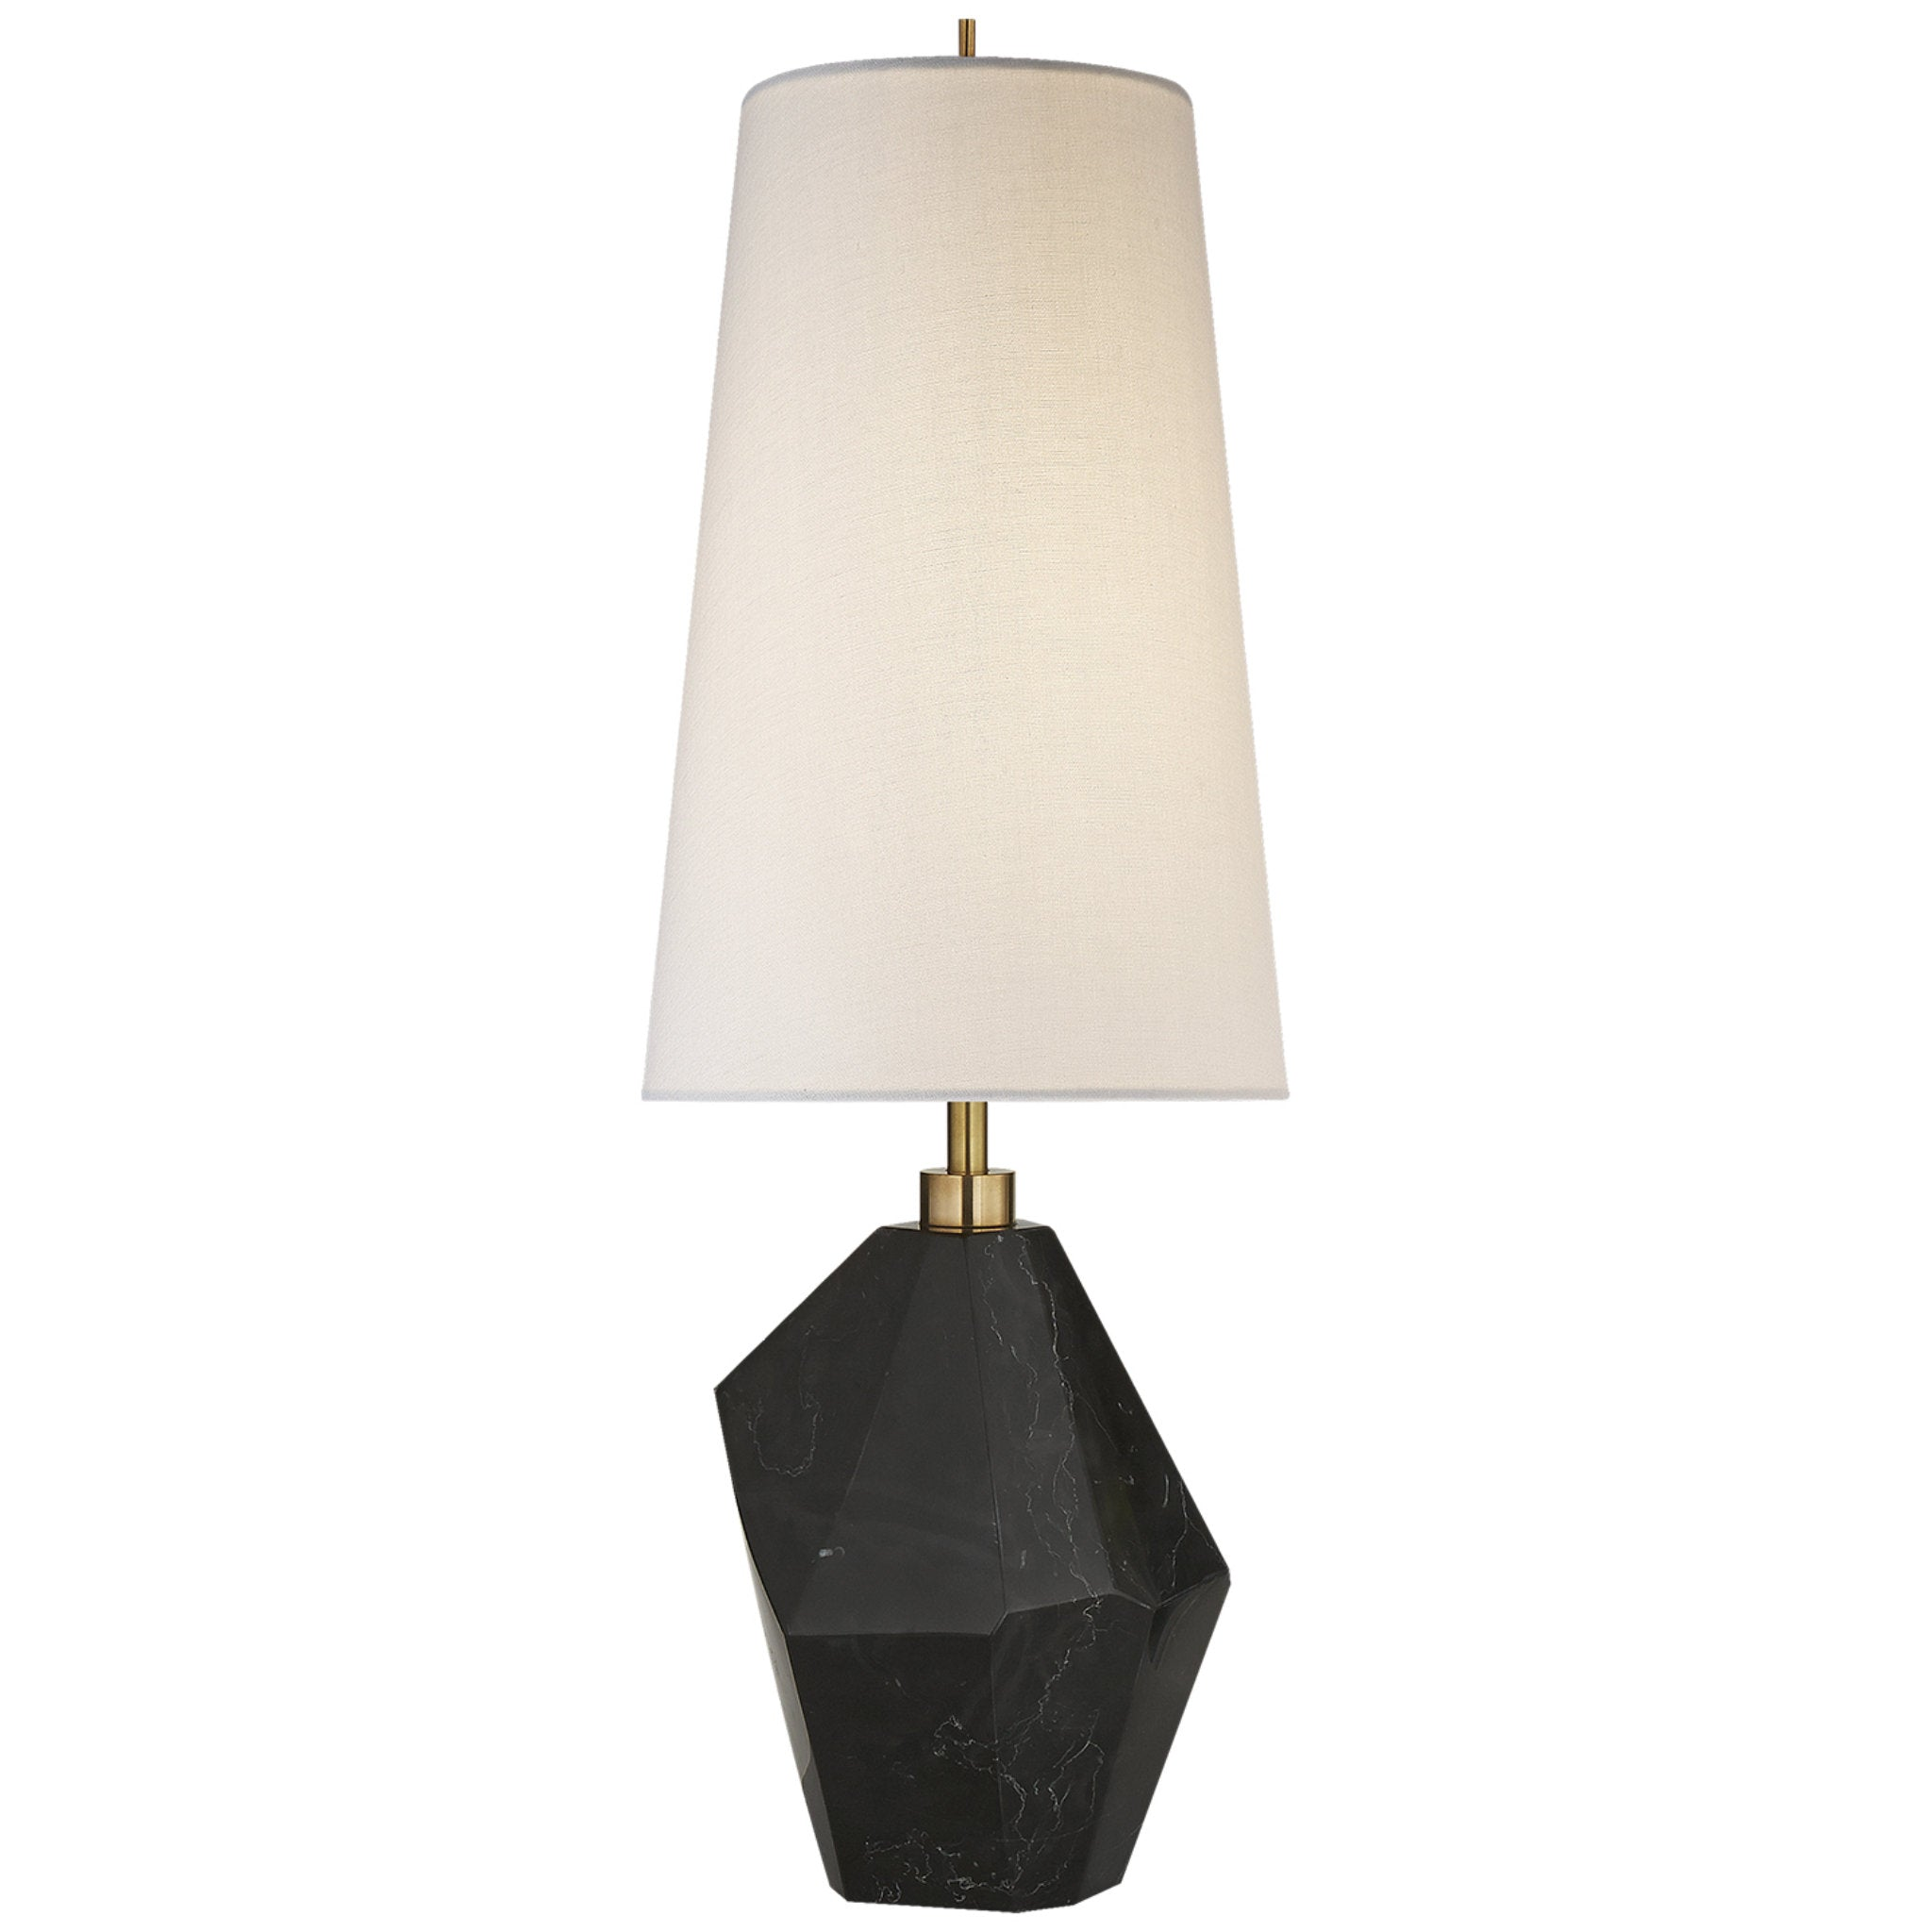 Visual Comfort Kw 3012bm L Kelly Wearstler Halcyon Accent Table Lamp I Foundry Lighting